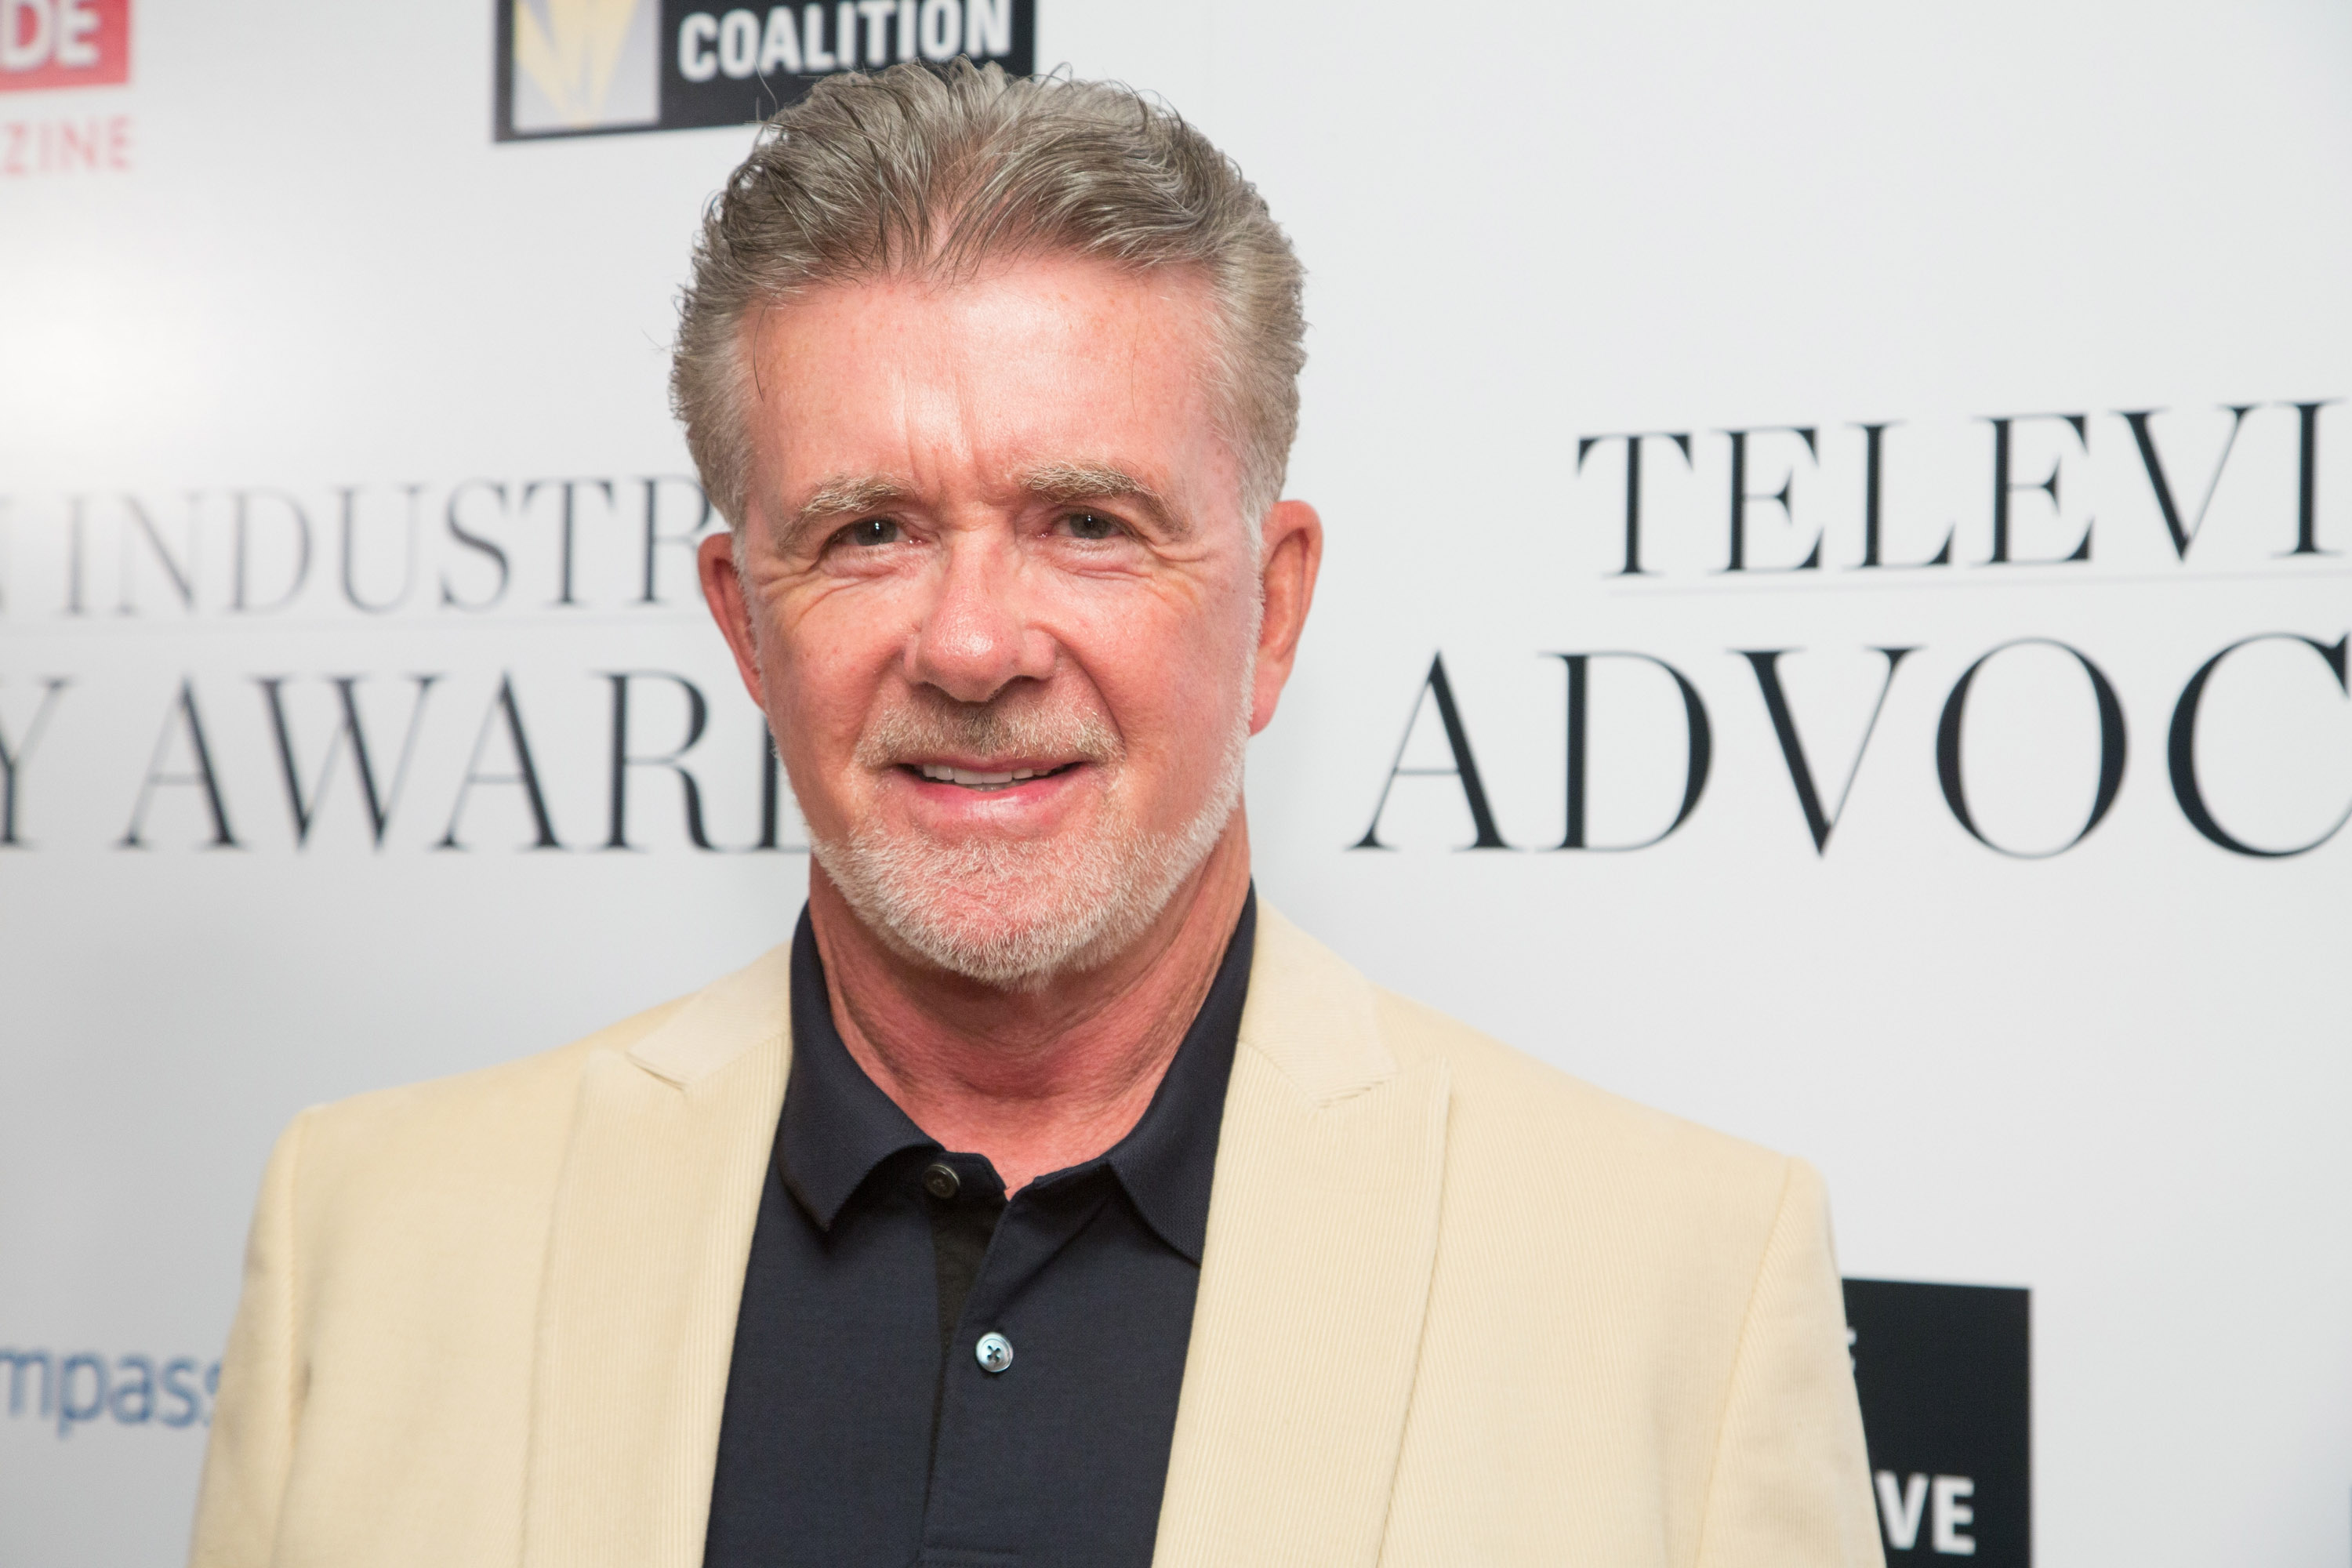 We just learned that TV legend Alan Thicke has died, and our hearts are breaking